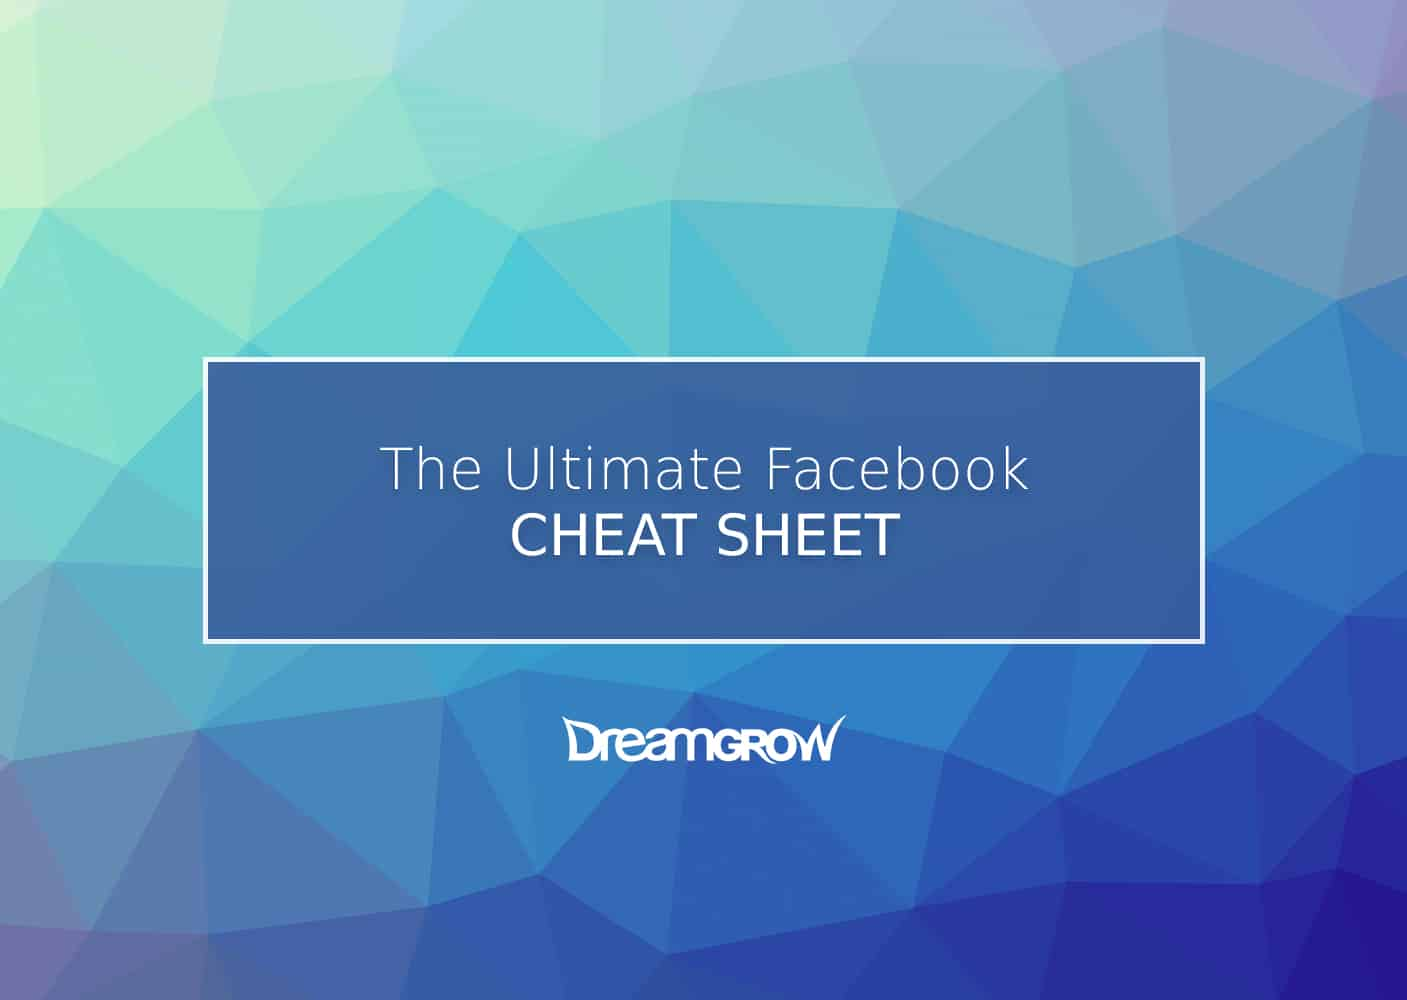 Facebook Cheat Sheet: All Sizes and Dimensions - DreamGrow